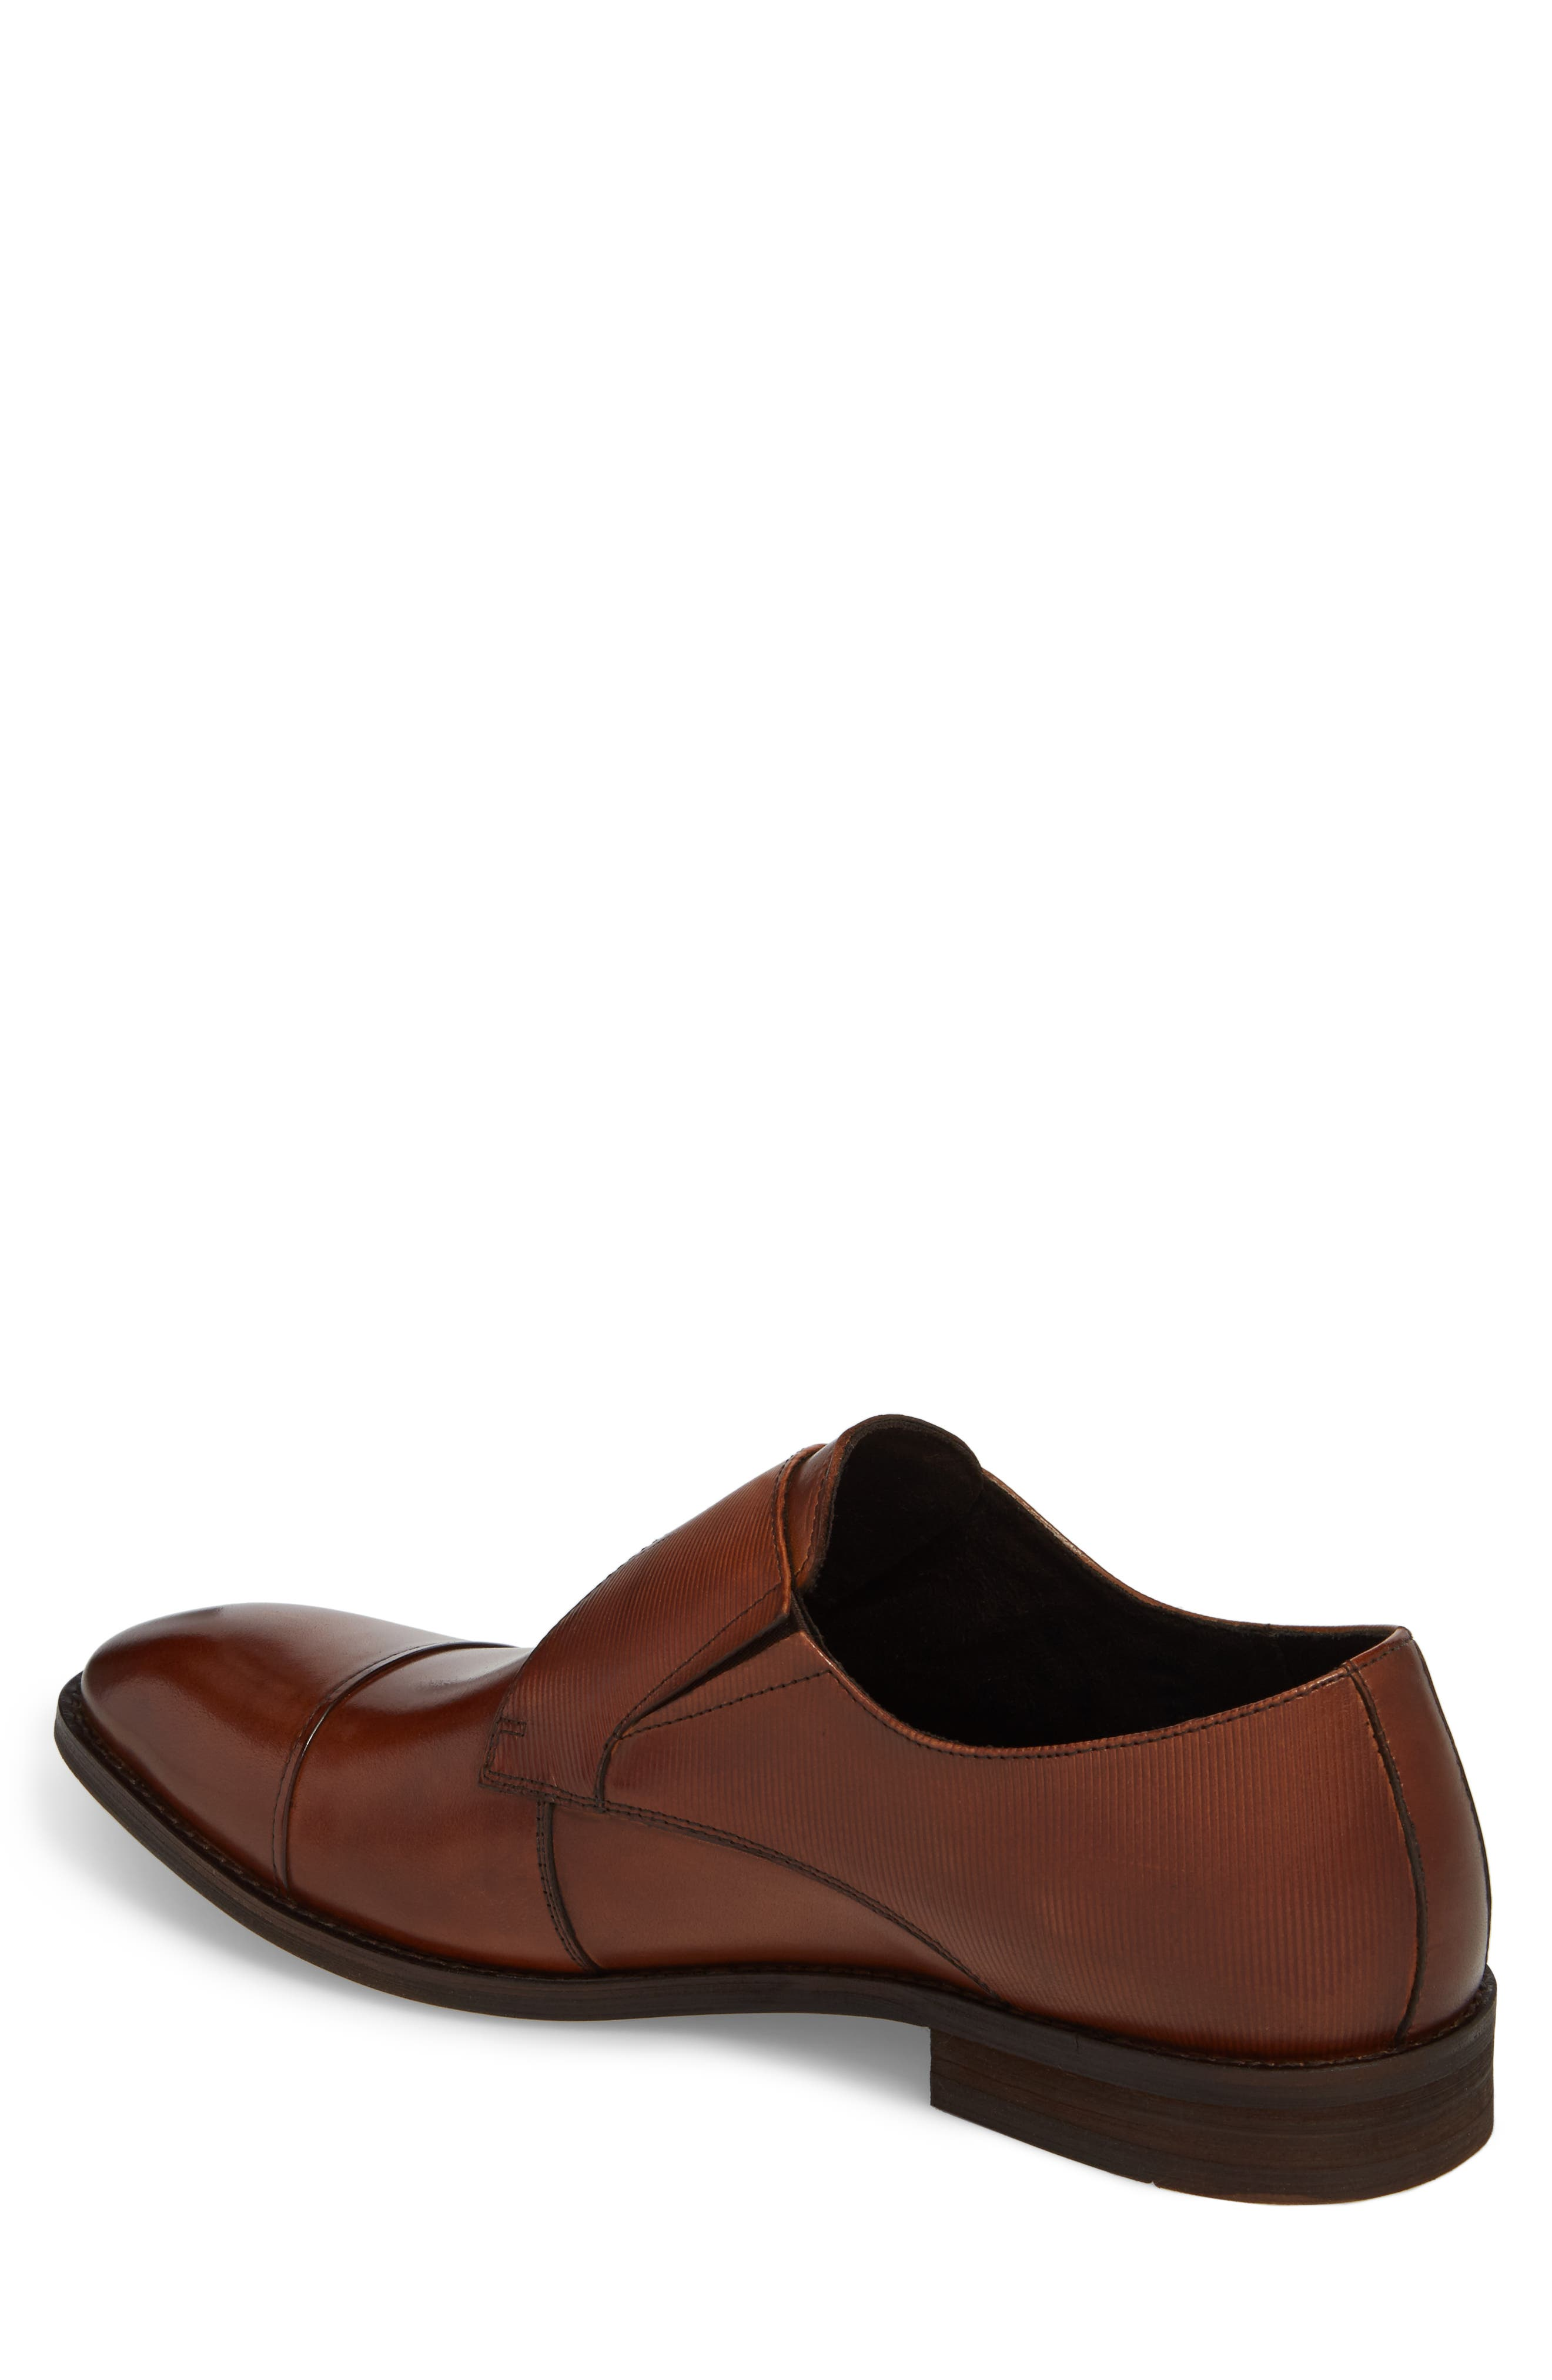 KENNETH COLE NEW YORK,                             Courage Monk Strap Shoe,                             Alternate thumbnail 2, color,                             200